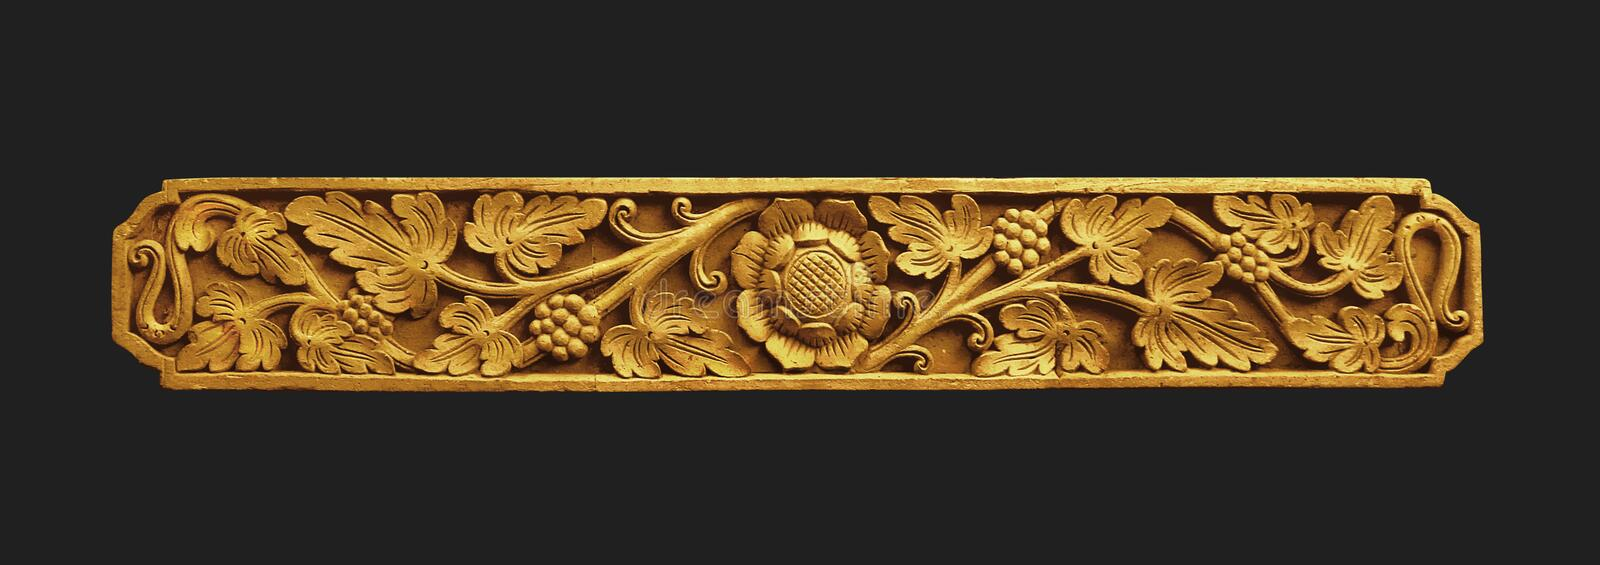 Balinese Gold Ornament royalty free stock photography